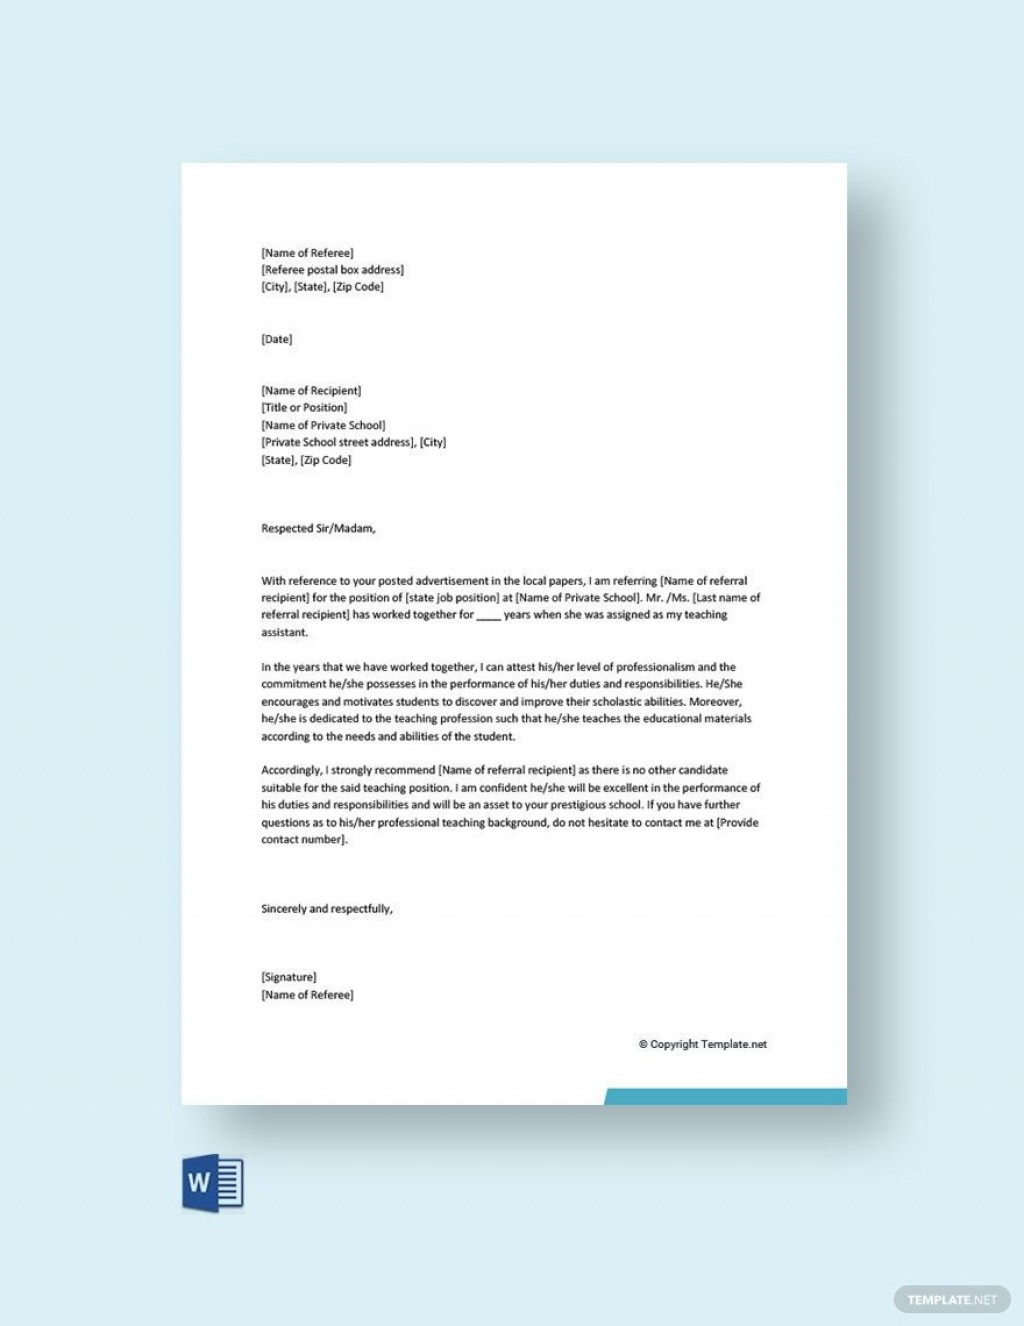 003 Fascinating Free Reference Letter Template Word Idea  Personal For EmploymentLarge